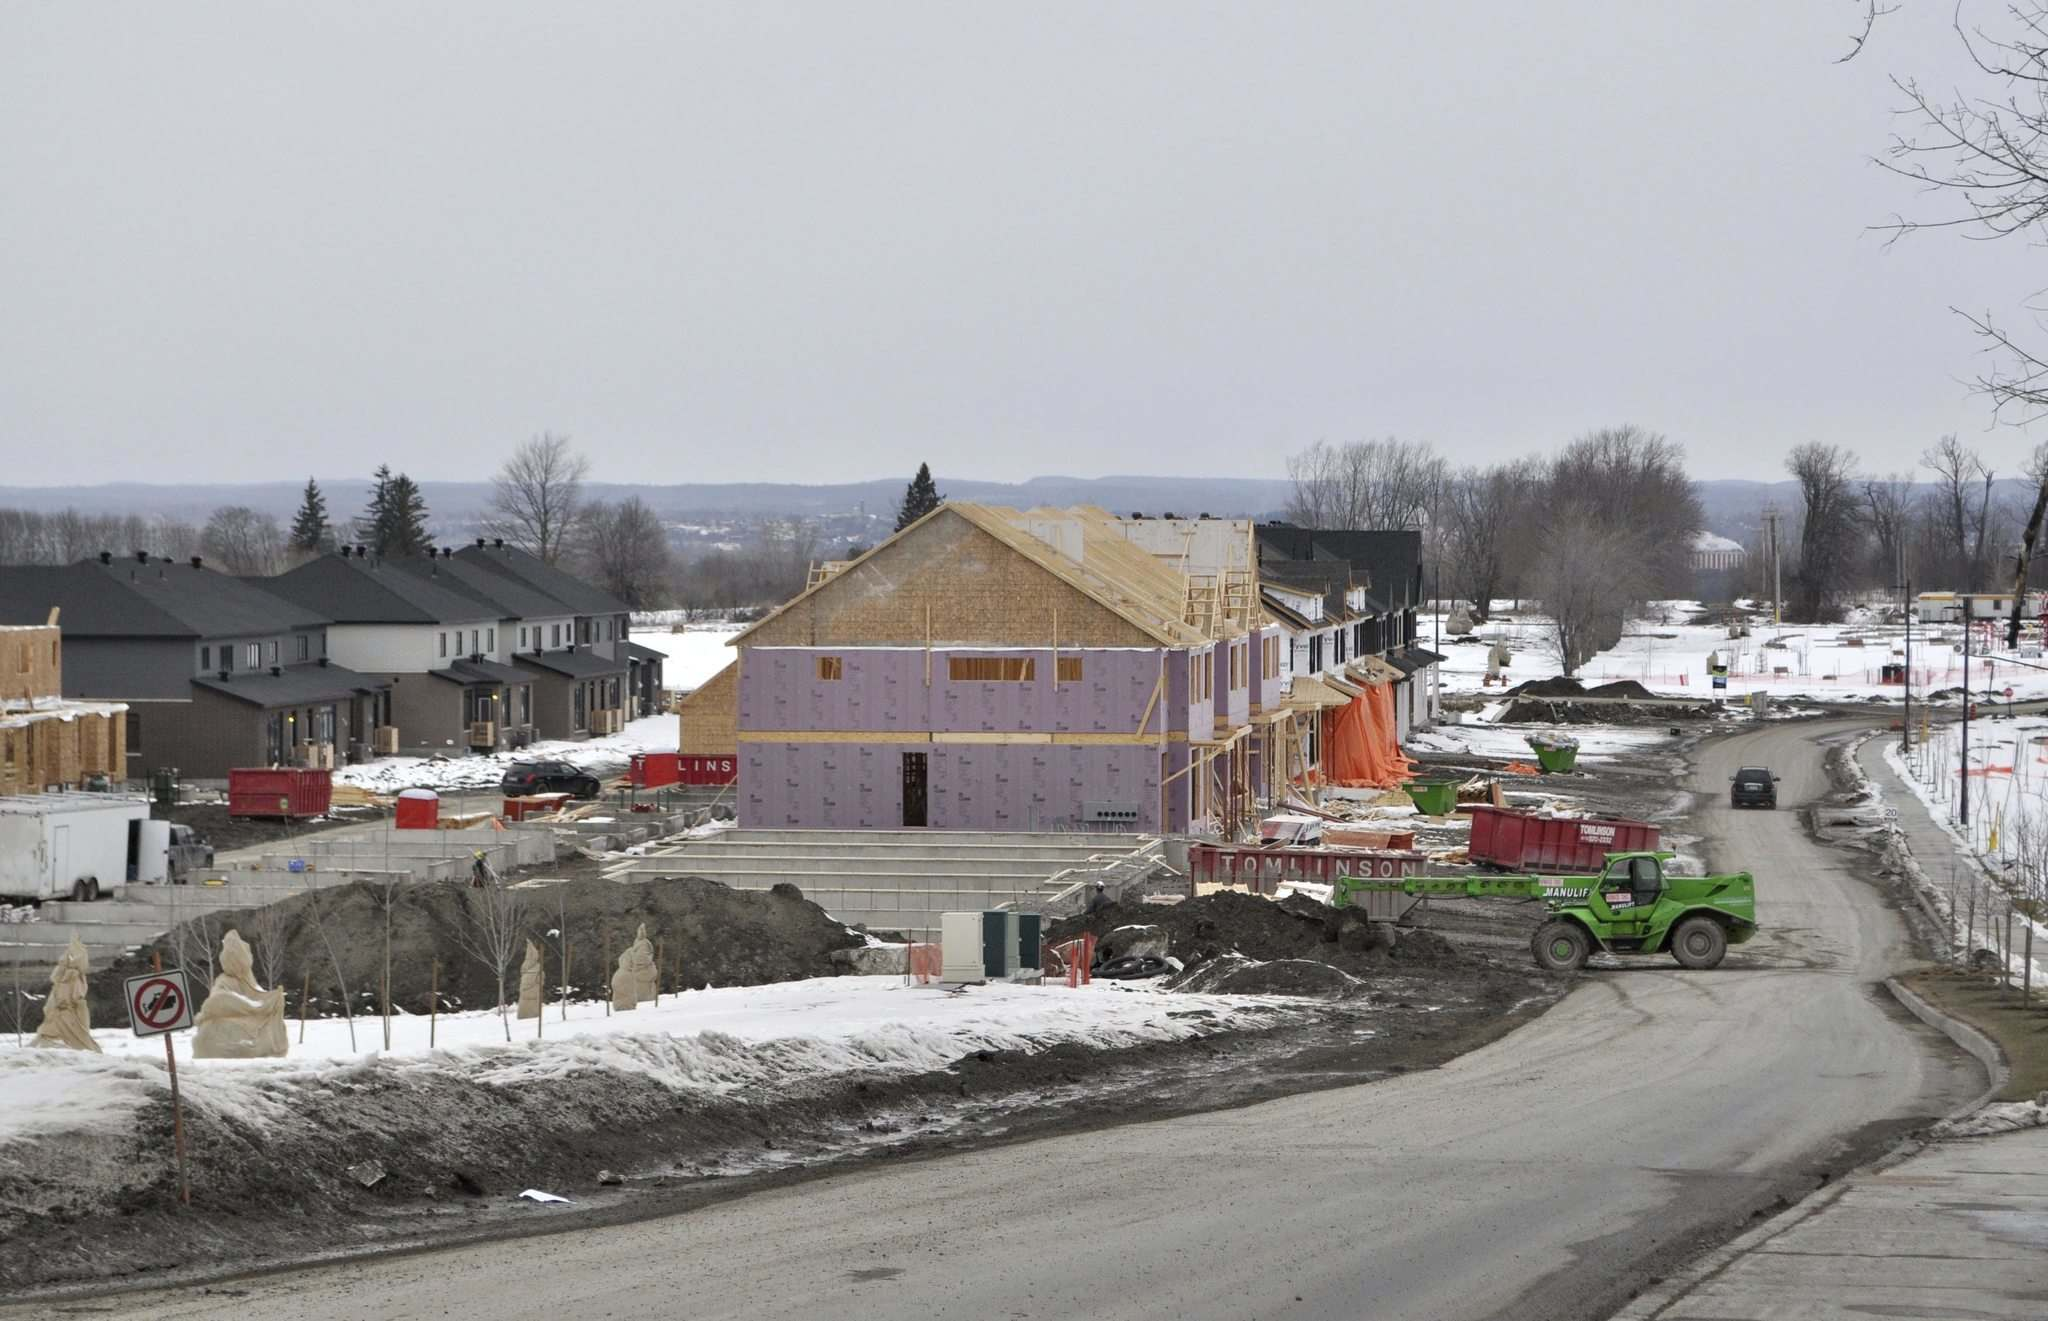 Houses are going up fast in Wateridge, which is a 16-minute drive from Parliament Hill.</p>